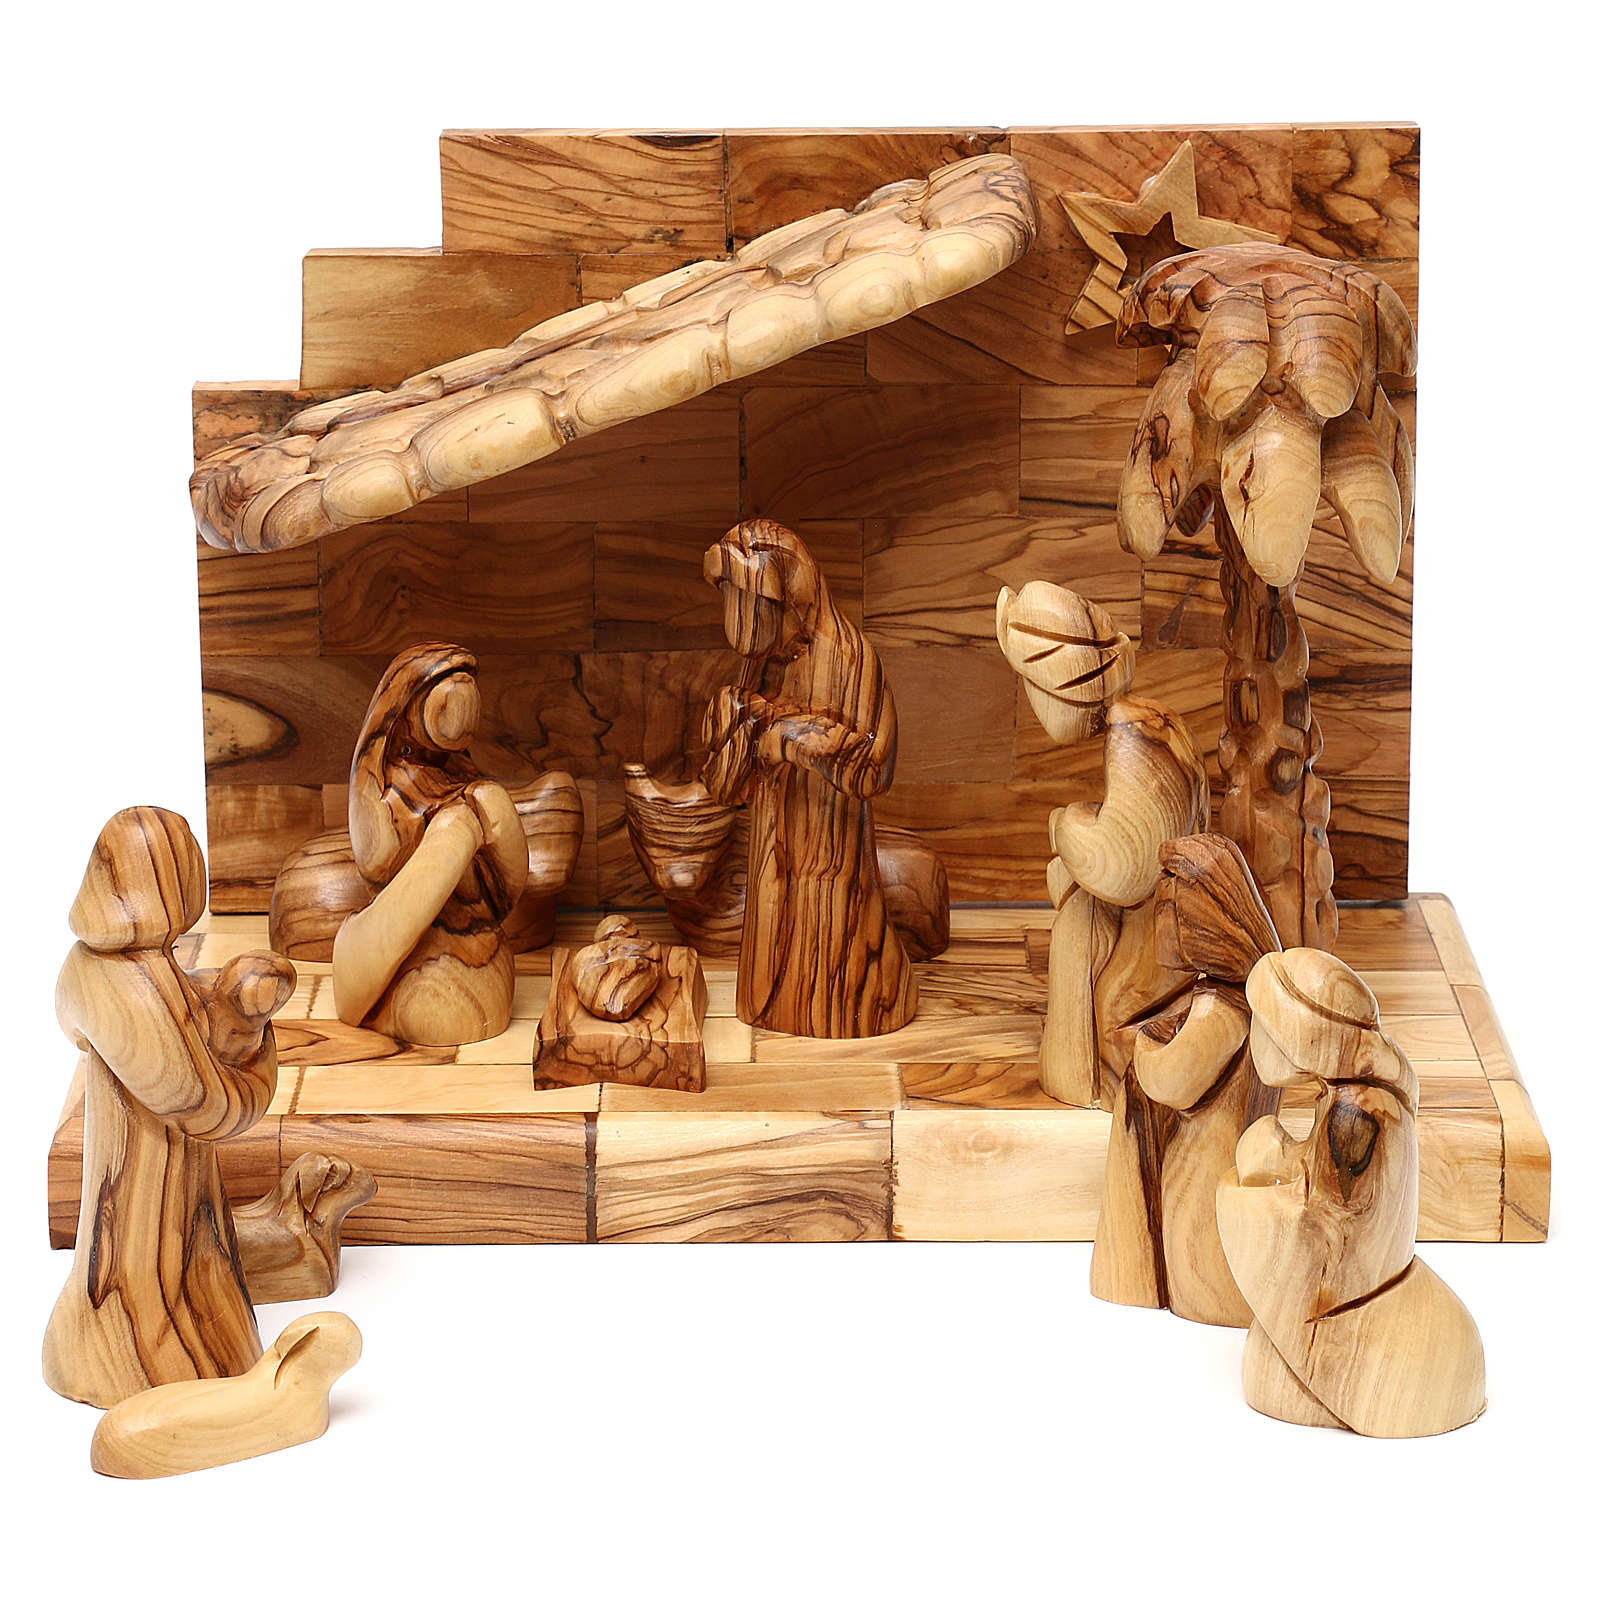 Nativity scene with cave in Bethlehem olive wood, star and palm tree 20x30x15 cm 4